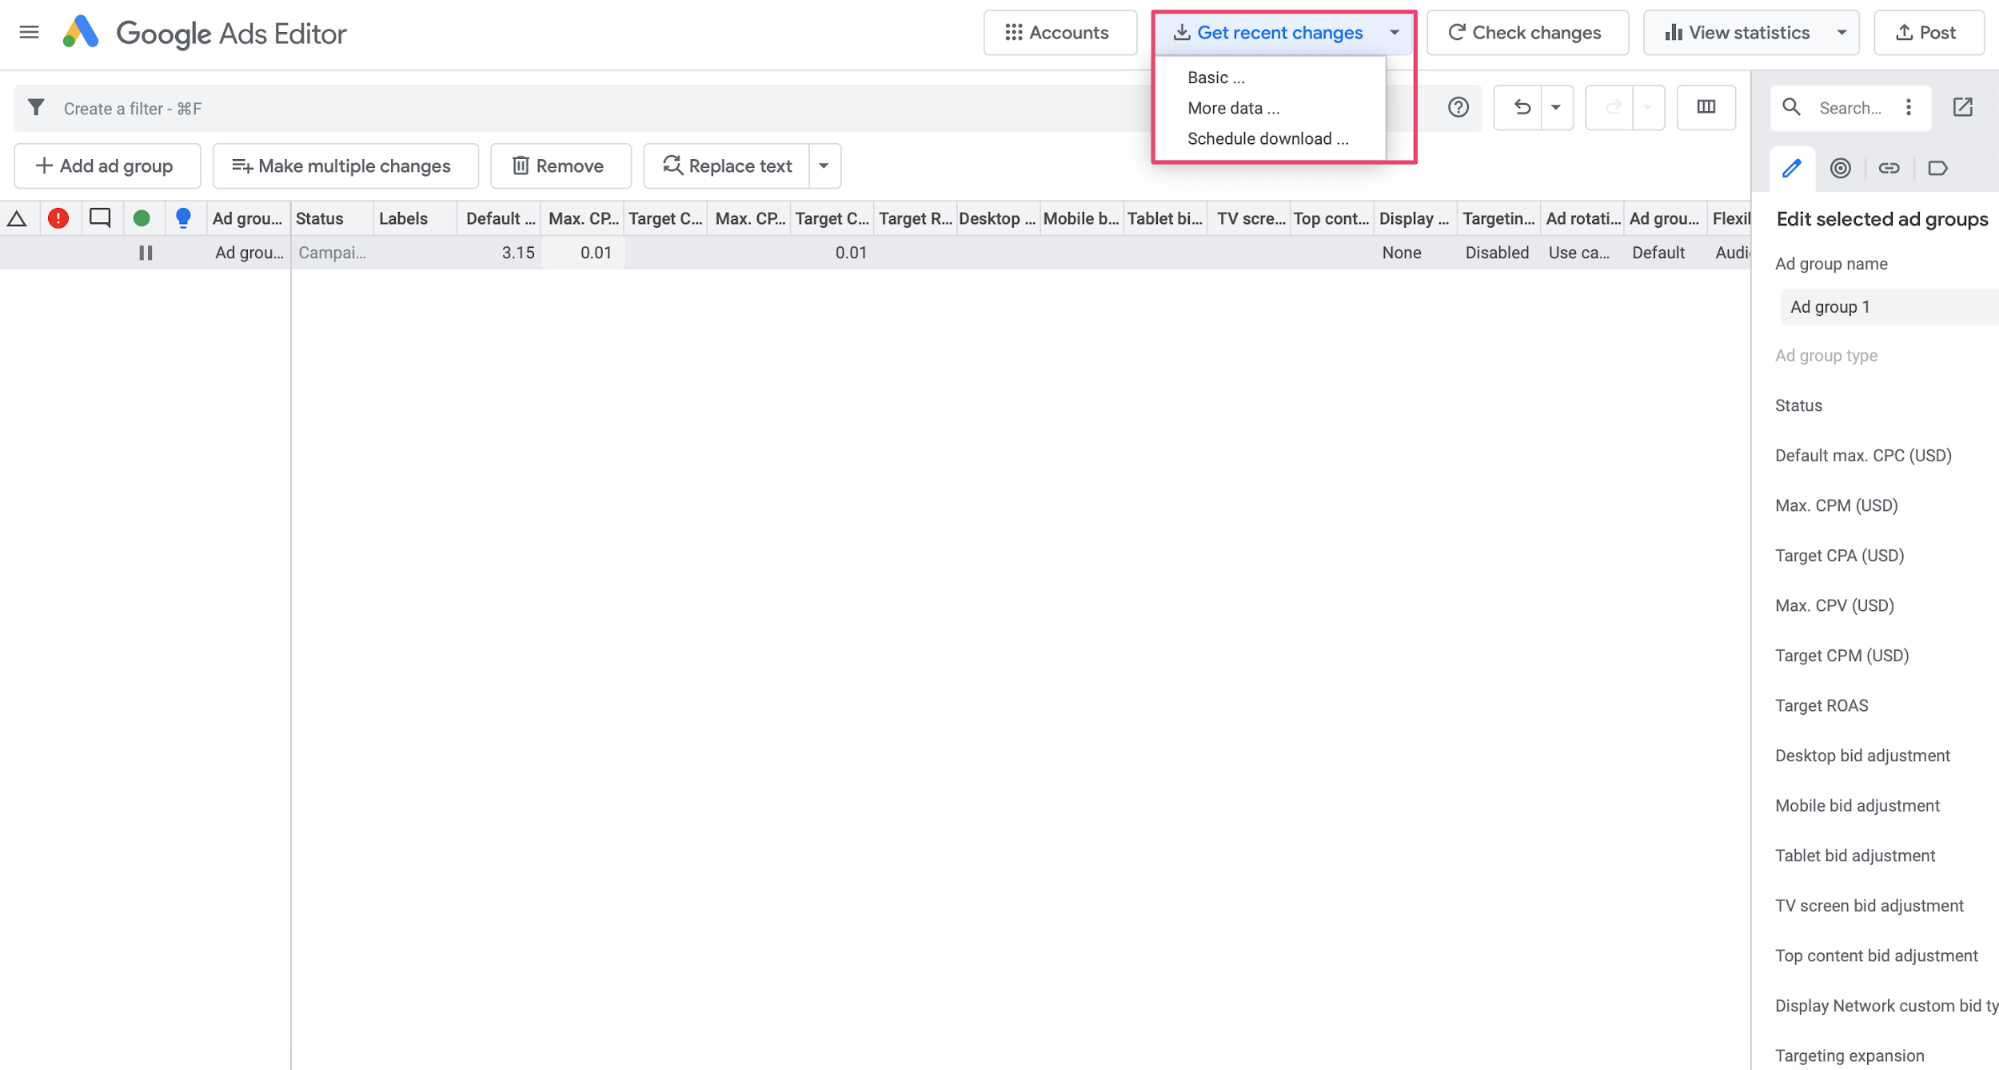 Google Ads Editor recent changes function